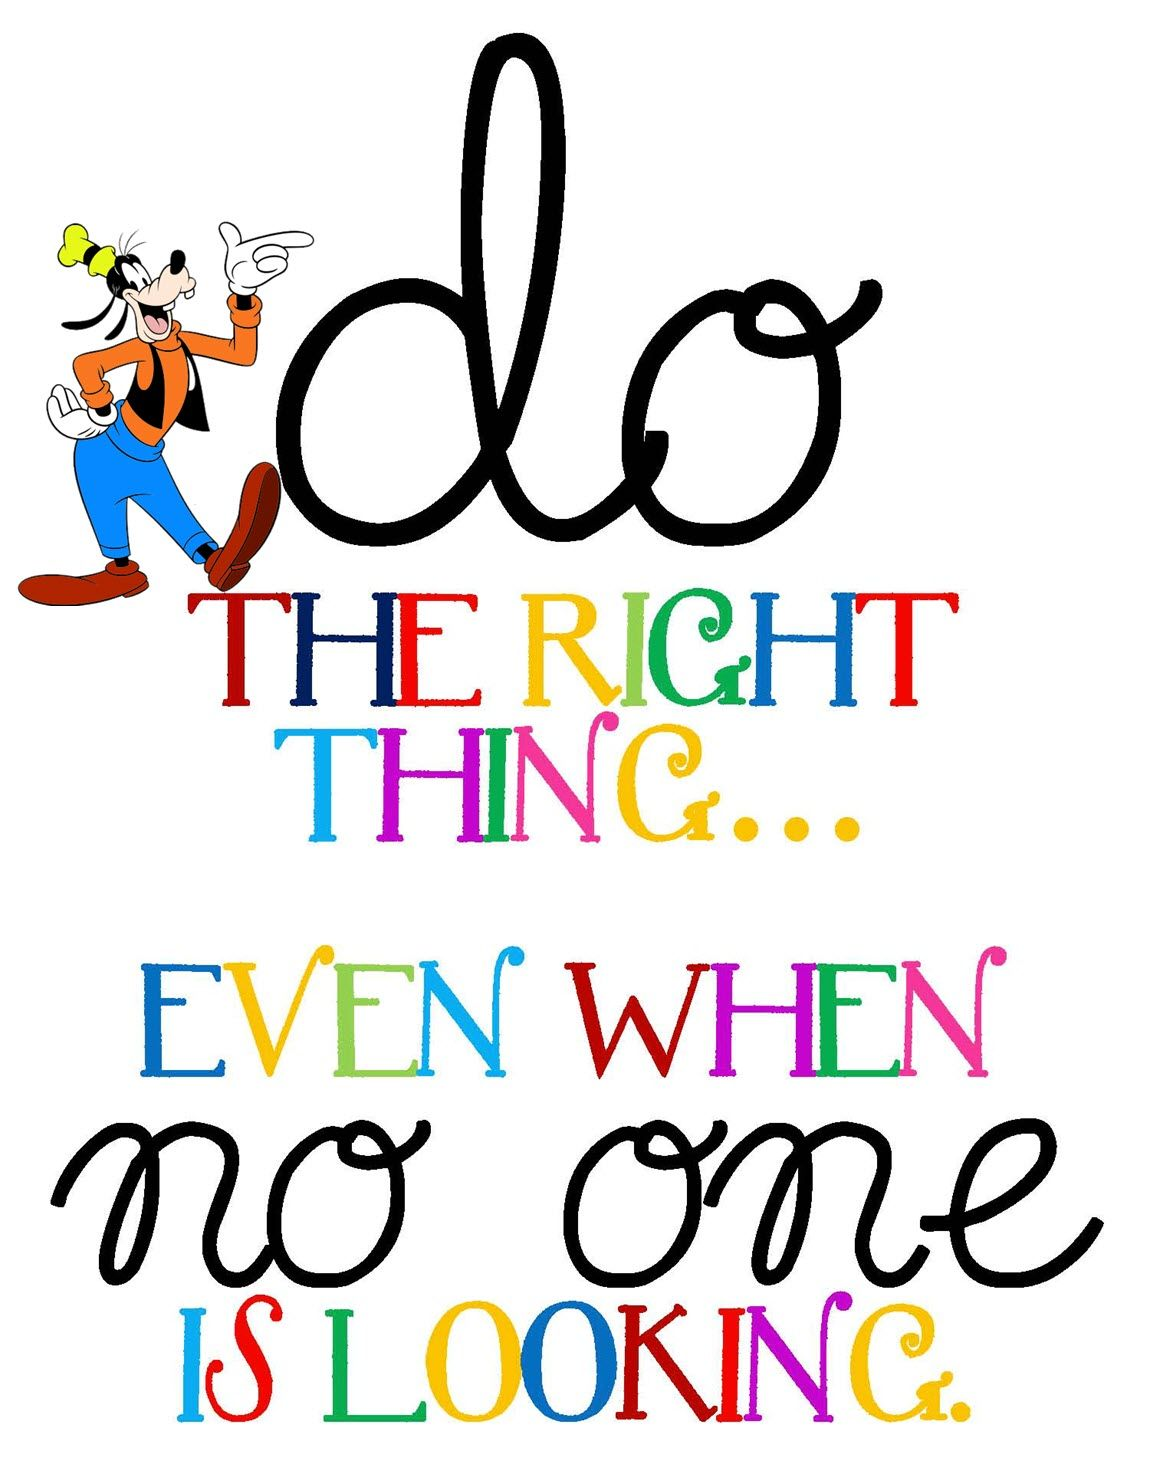 It's The Right Thing To Do - Orlando Espinosa